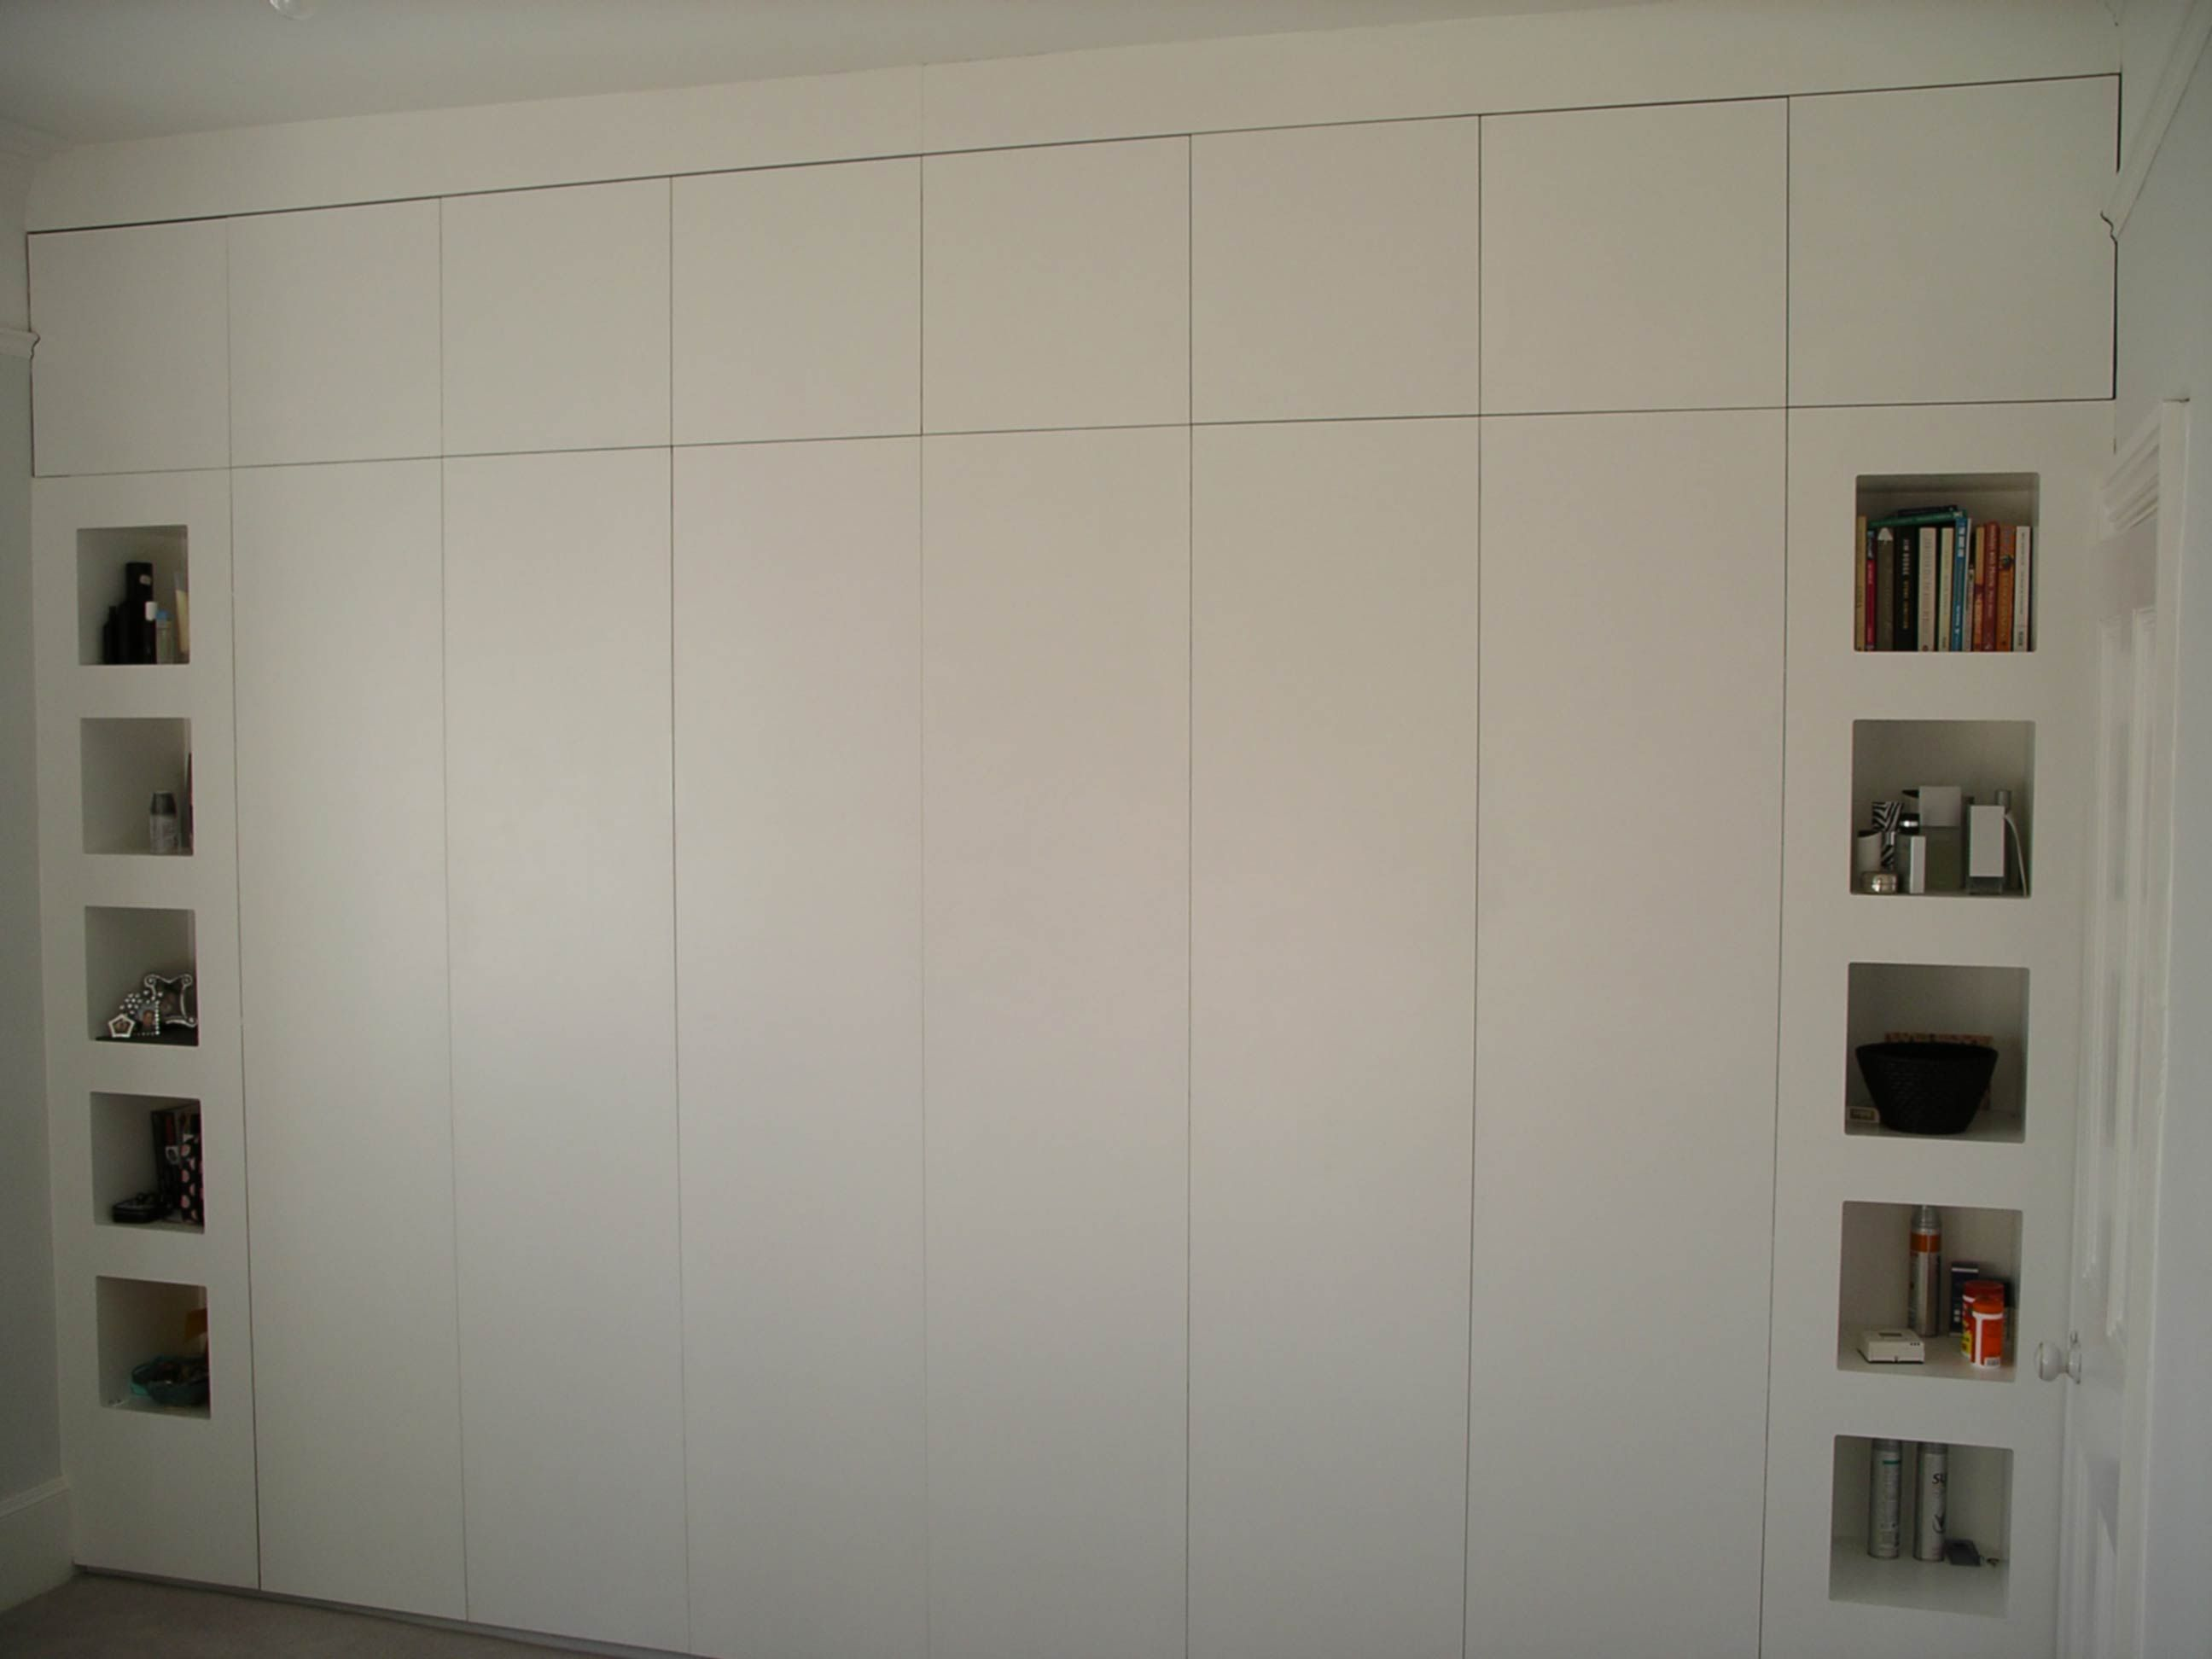 Like The Cubby Hole Shelves Wall To Wall Wardrobe By